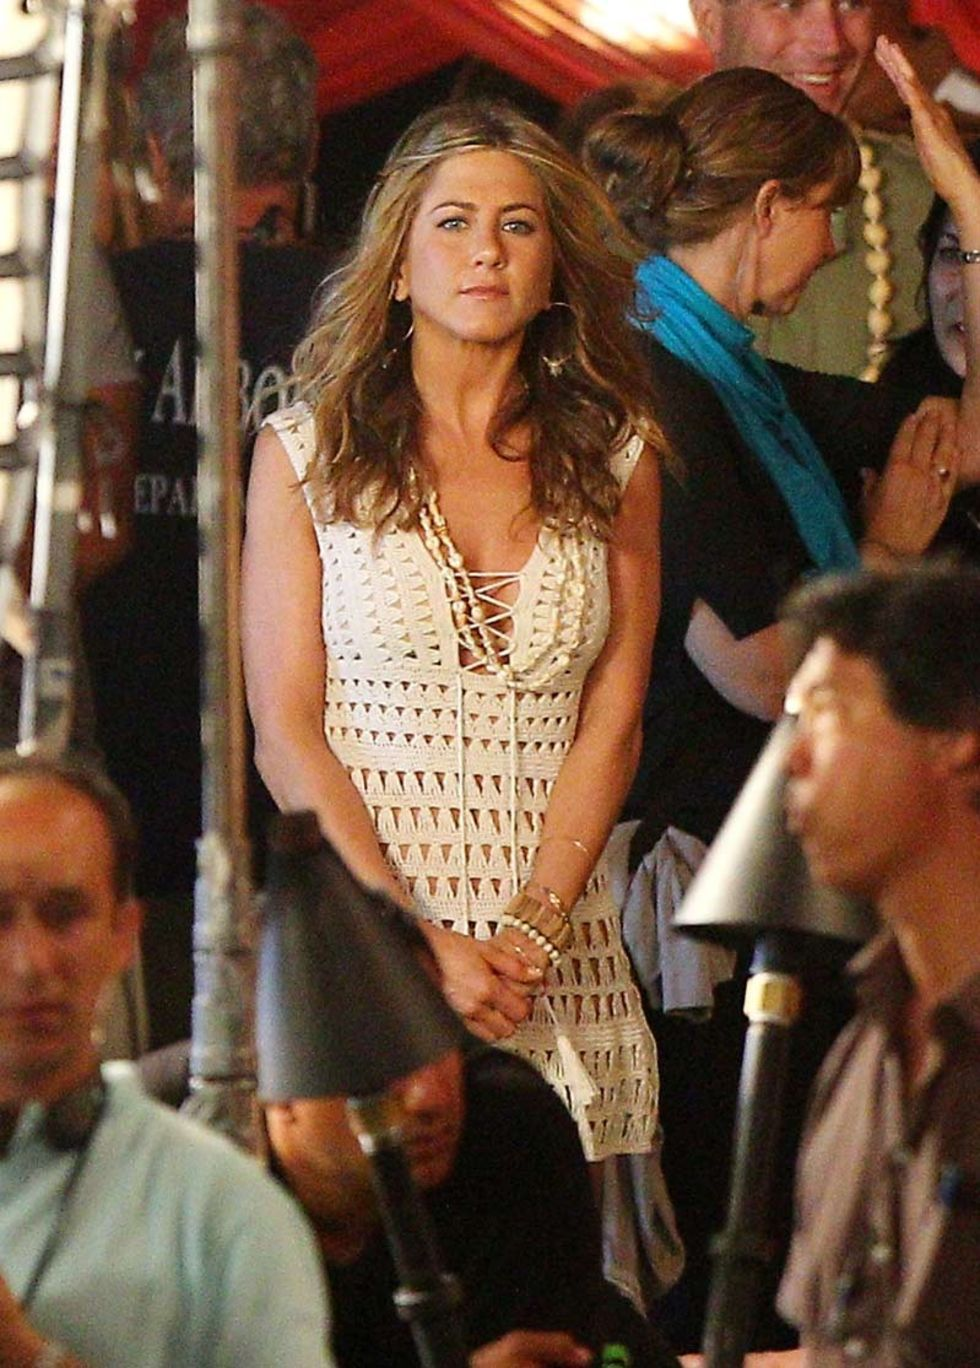 jennifer-aniston-on-set-of-just-go-with-it-in-maui-04 ... Jennifer Aniston Just Go With It Bikini